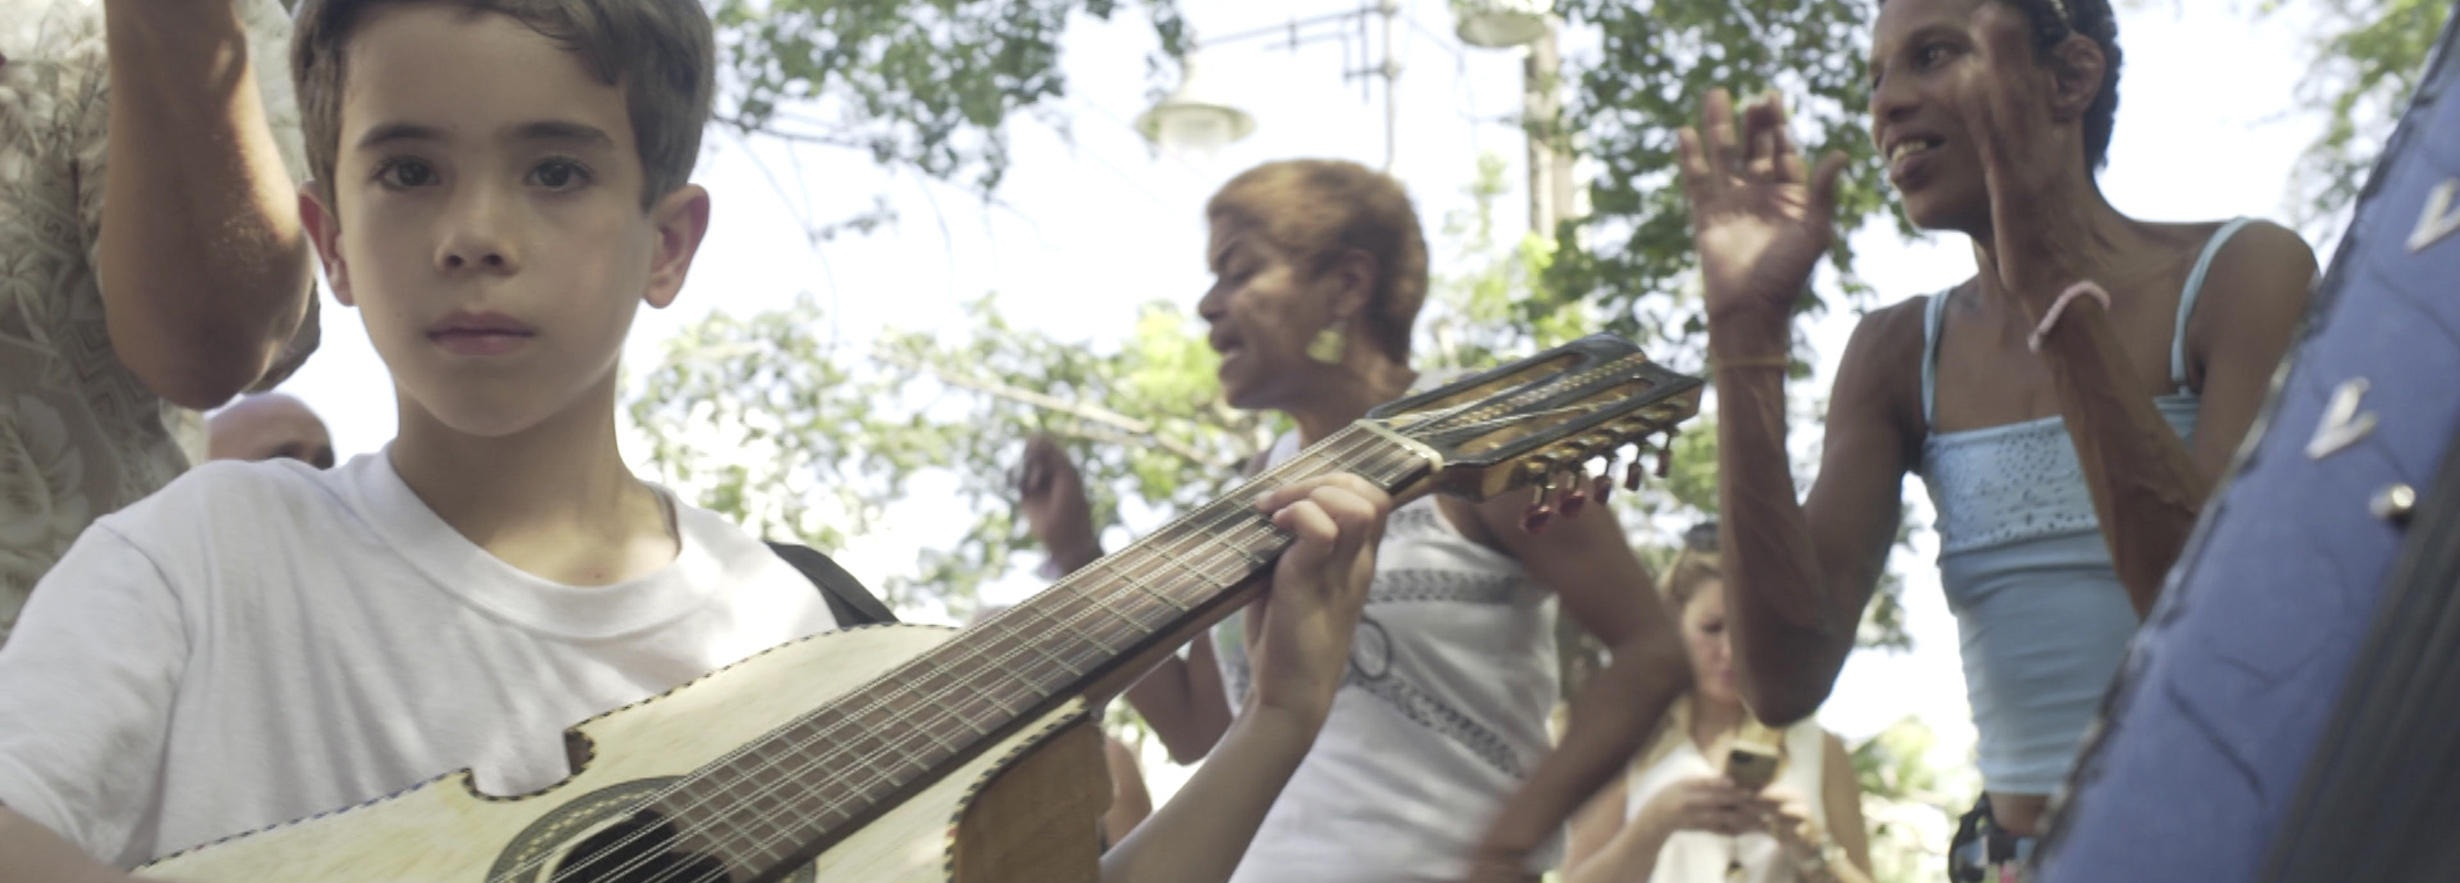 MIGUELITO - CANTO A BORINQUEN  (Sam Zubrycki, Puerto Rico/USA/Colombia/Australia, 2019, 94 min.)  U.S. Premiere | Filmmaker in Attendance   Buy Tickets   What happened to Miguelito? After the 11-year-old Puerto Rican  salsero  played Madison Square Garden in 1972, he and his whole family disappeared from New York City. Now, legendary producer Harvey Averne is anxious to rediscover both Miguelito and the sound of early 70s New York salsa scene. Experience the lively world of Puerto Rican music as the mystery of an 11-year-old  salsero 's disappearance unfolds.   Sunday, October 20, 5pm